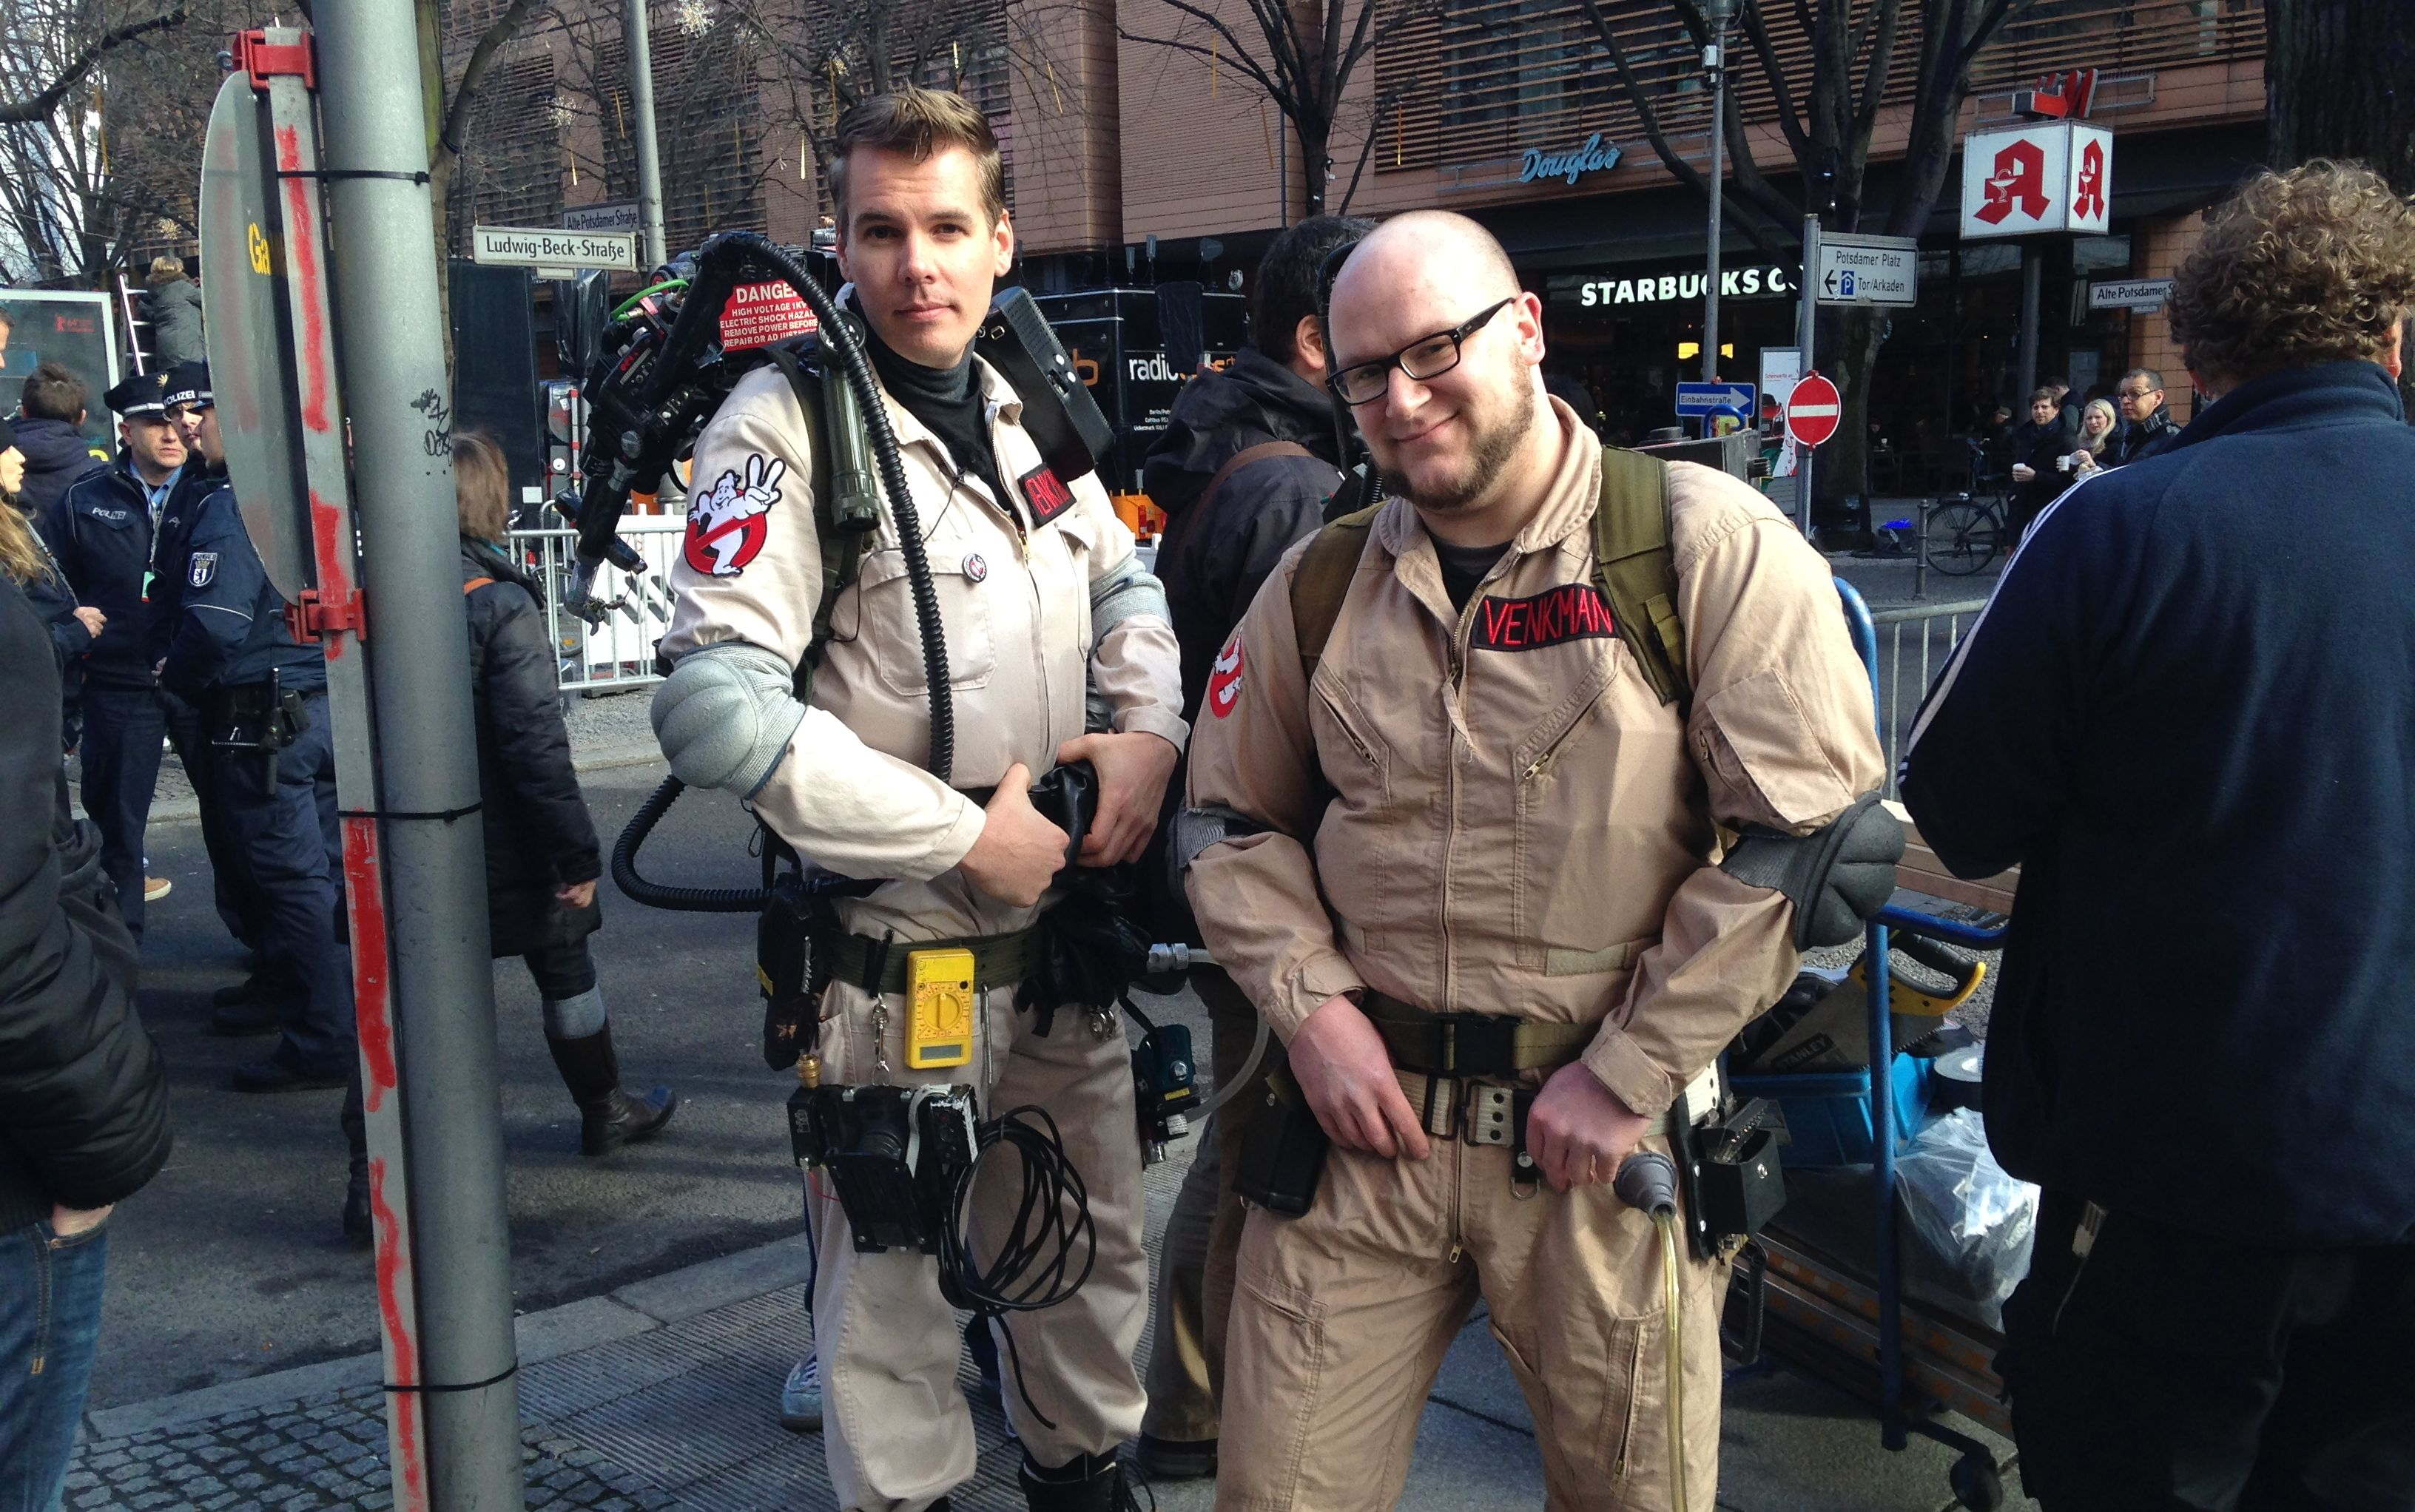 Berlino 2014: fan aspettano Bill Murray vestiti da Ghostbusters